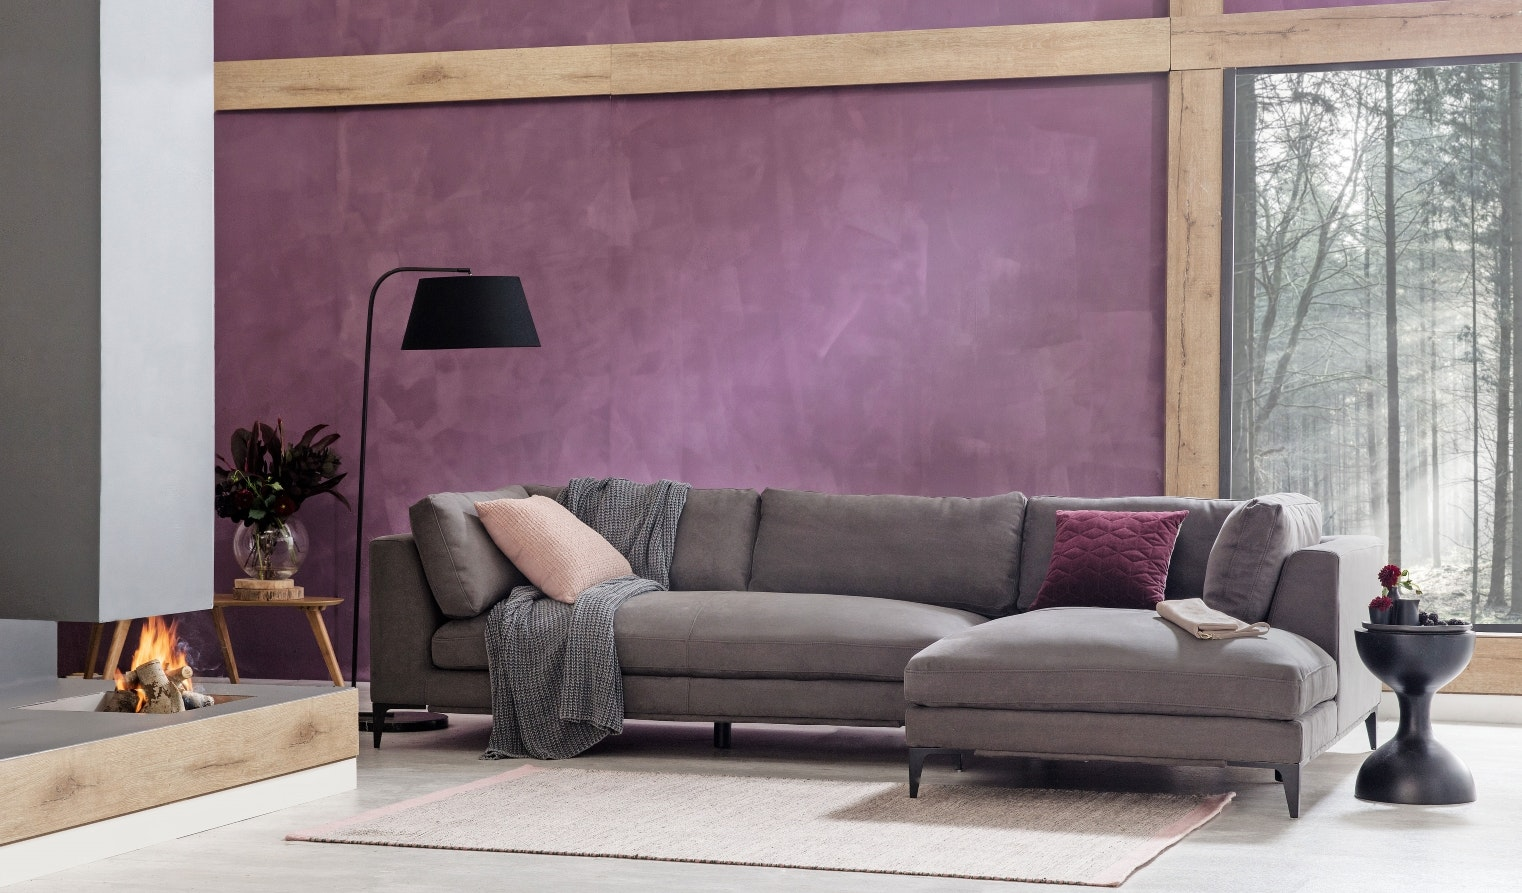 Alara 3 Seater Fabric Sofa with Chaise